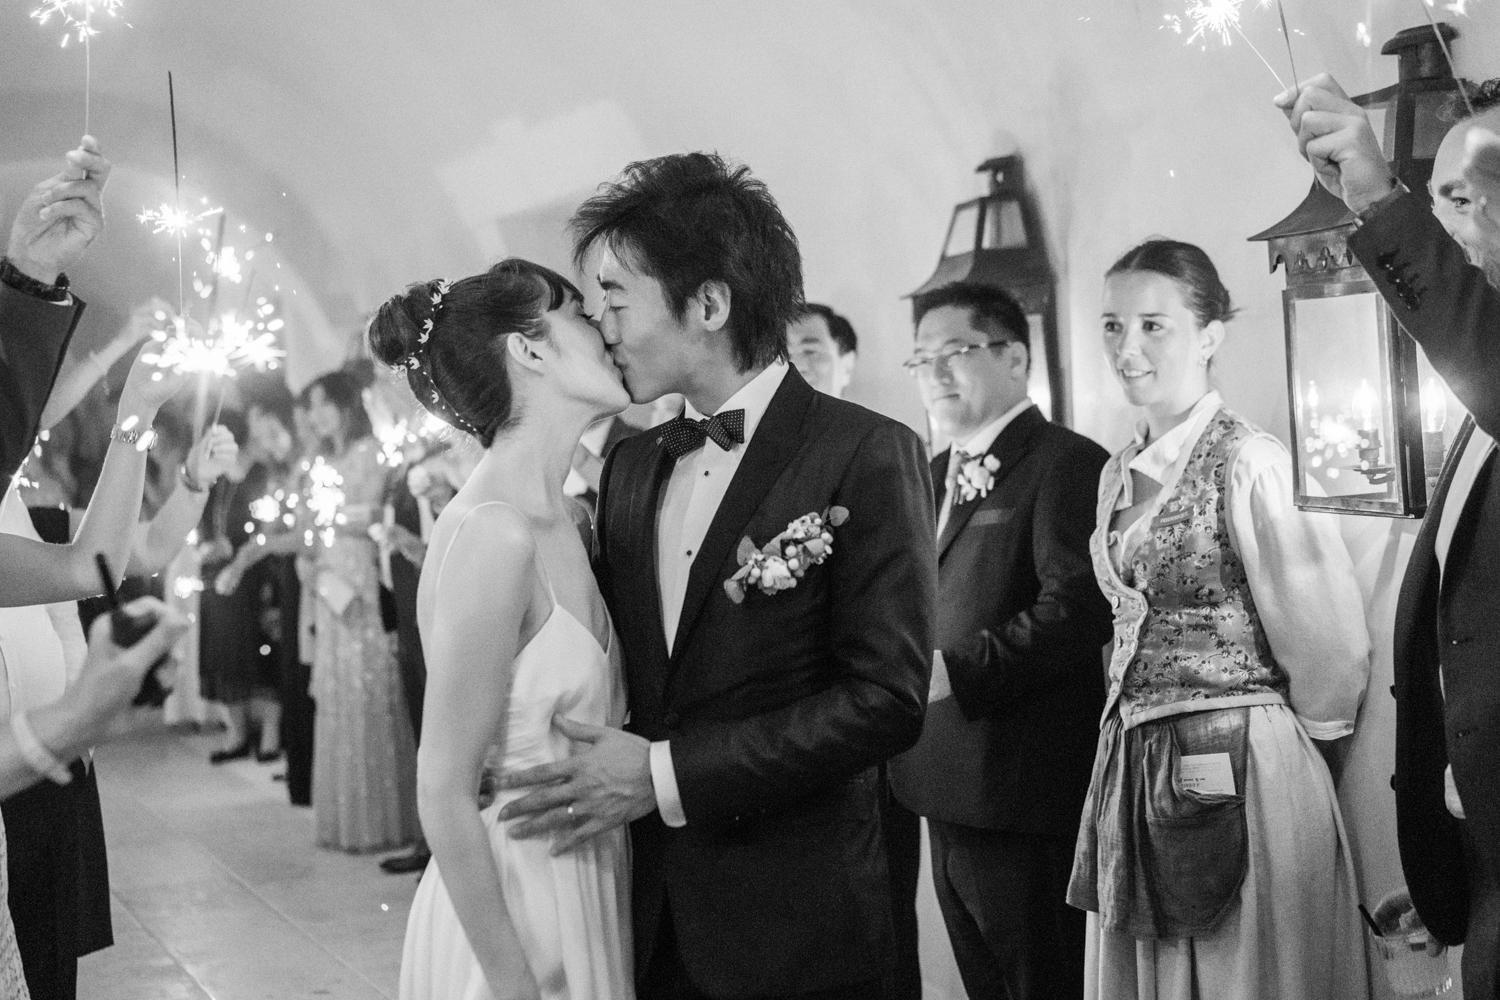 The bride and groom kiss among their friends and families holding sparklers to send them off; Sylvie Gil Photography